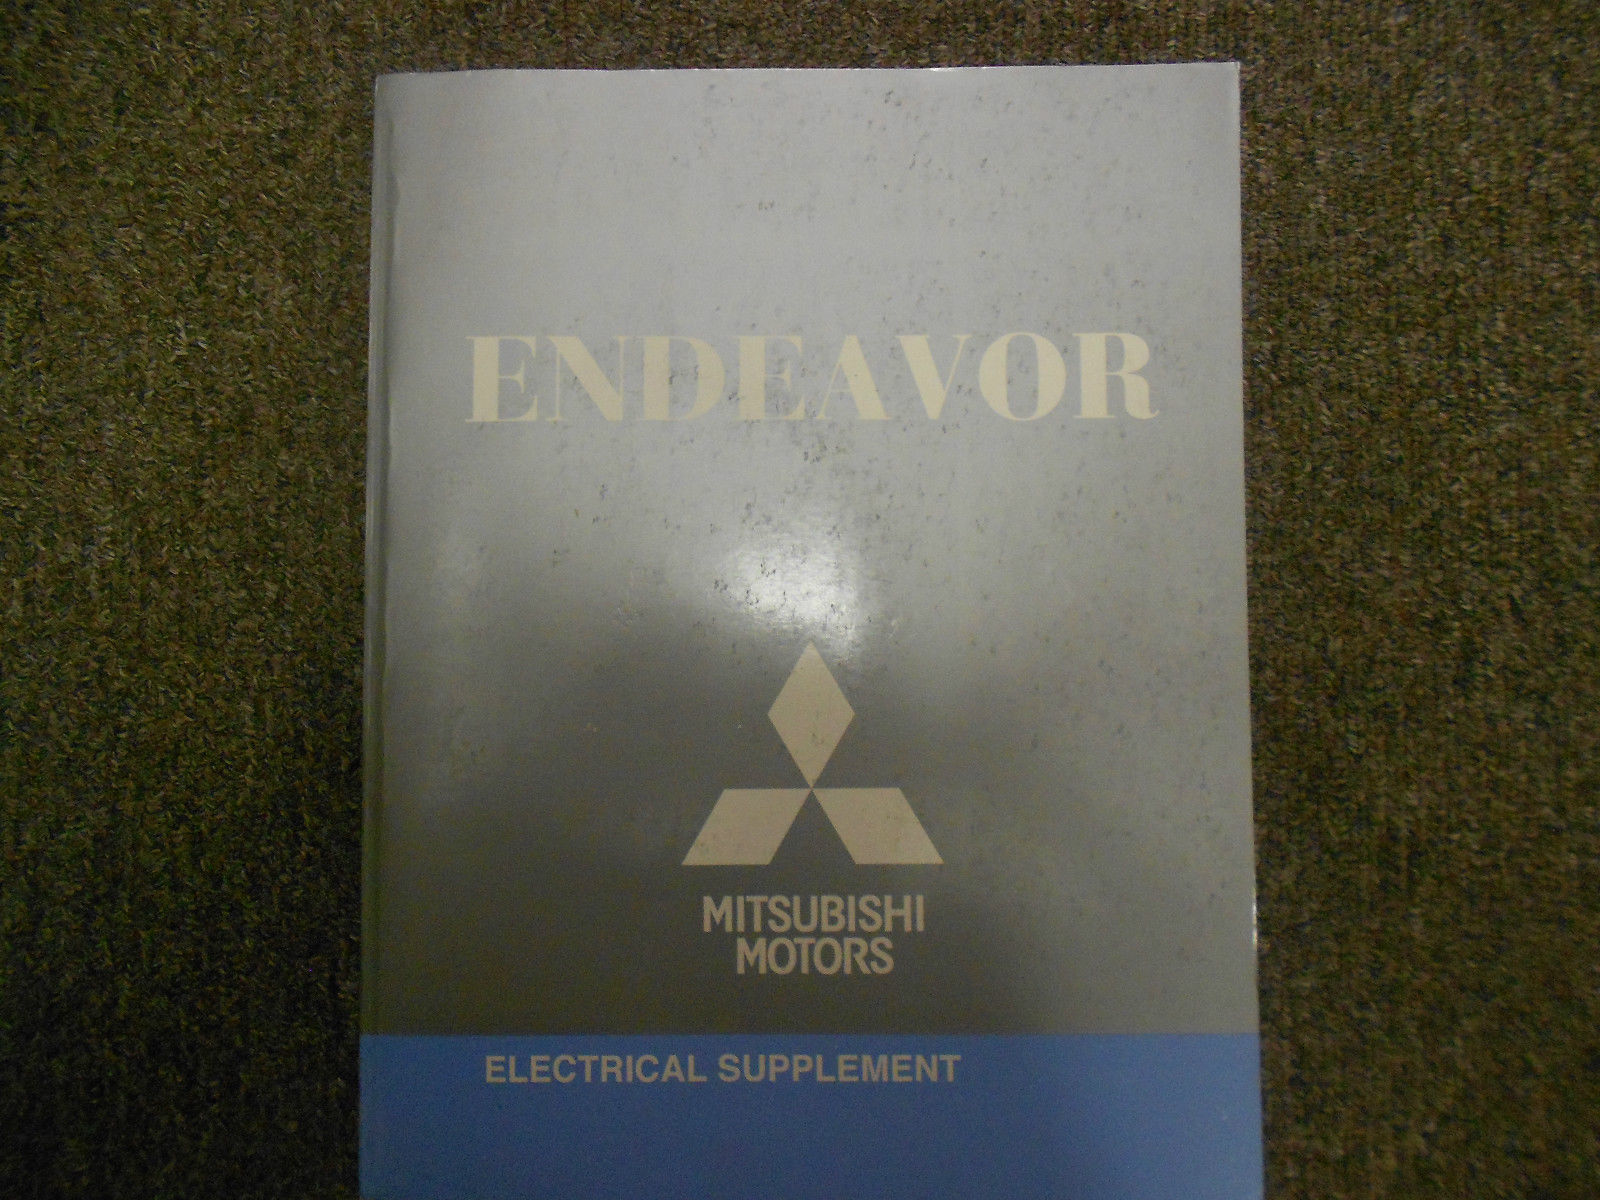 2010 MITSUBISHI Endeavor Electrical Supplement Service Repair Shop Manual OEM